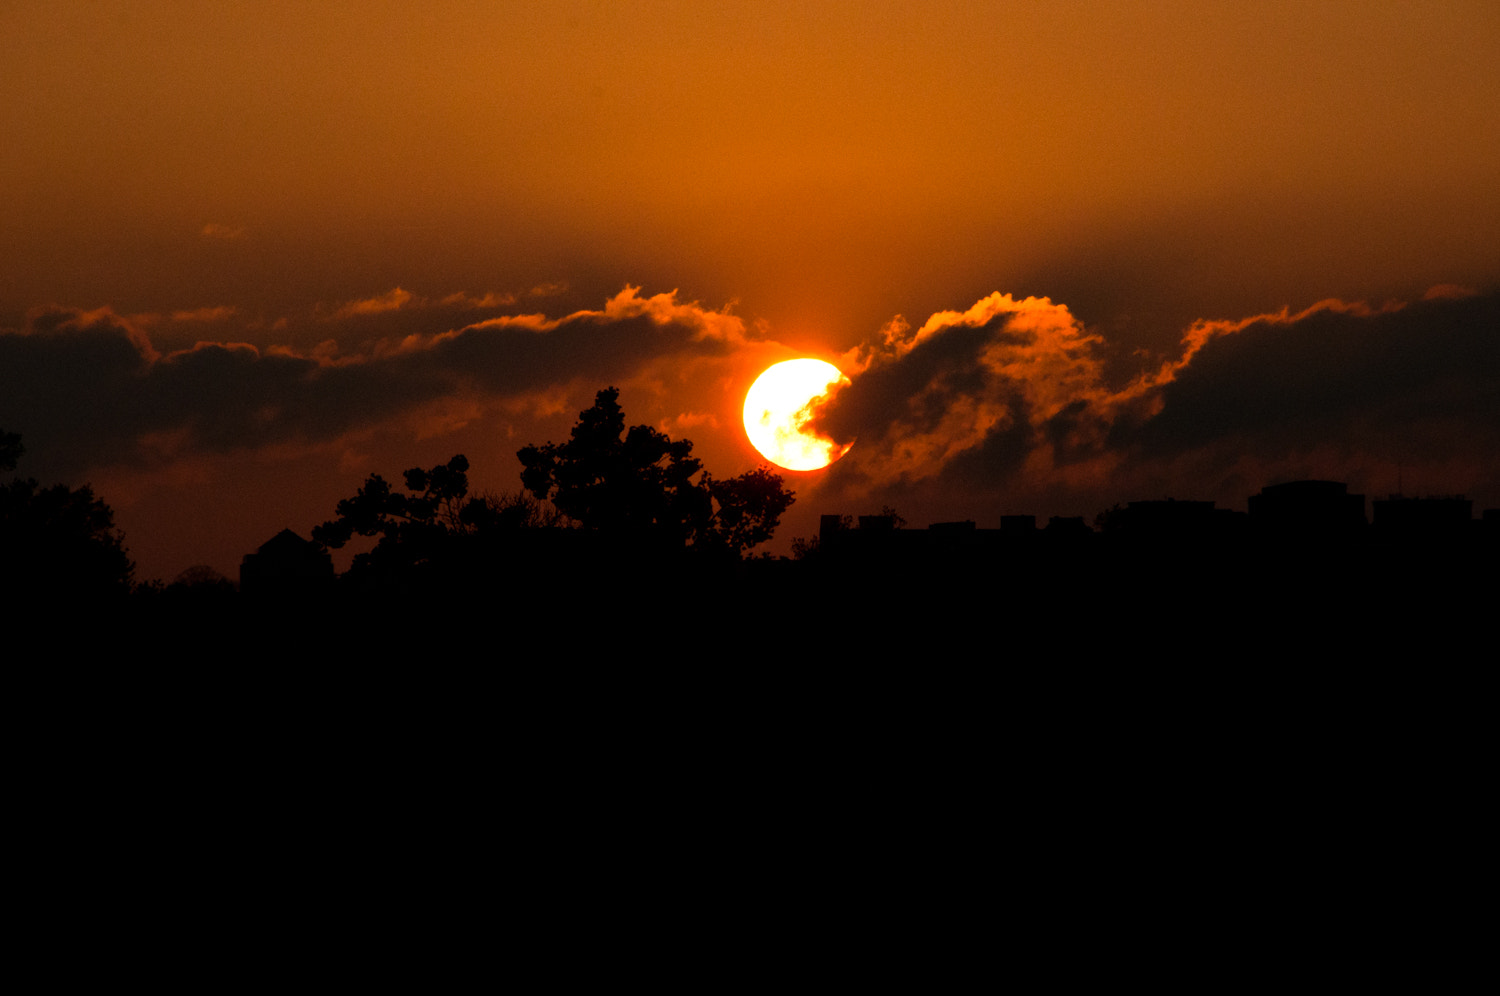 Photograph sunset in DC by Julian Ortiz on 500px